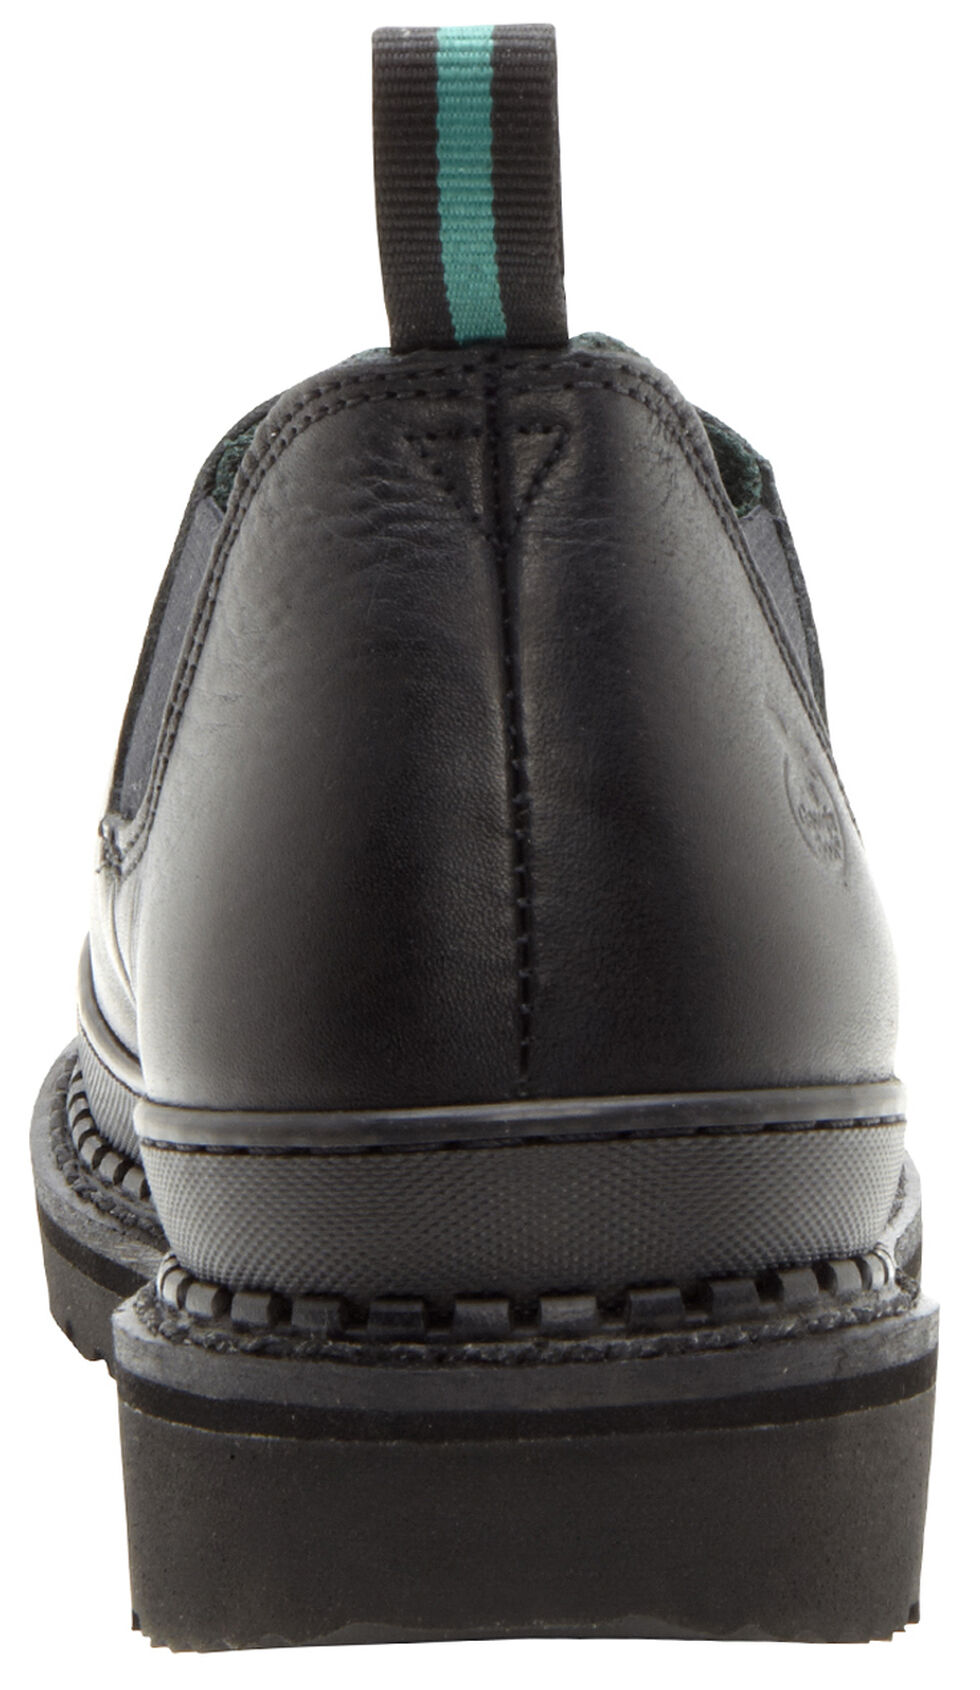 Georgia Boots Women's Giant Romeo Work Shoes, Black, hi-res